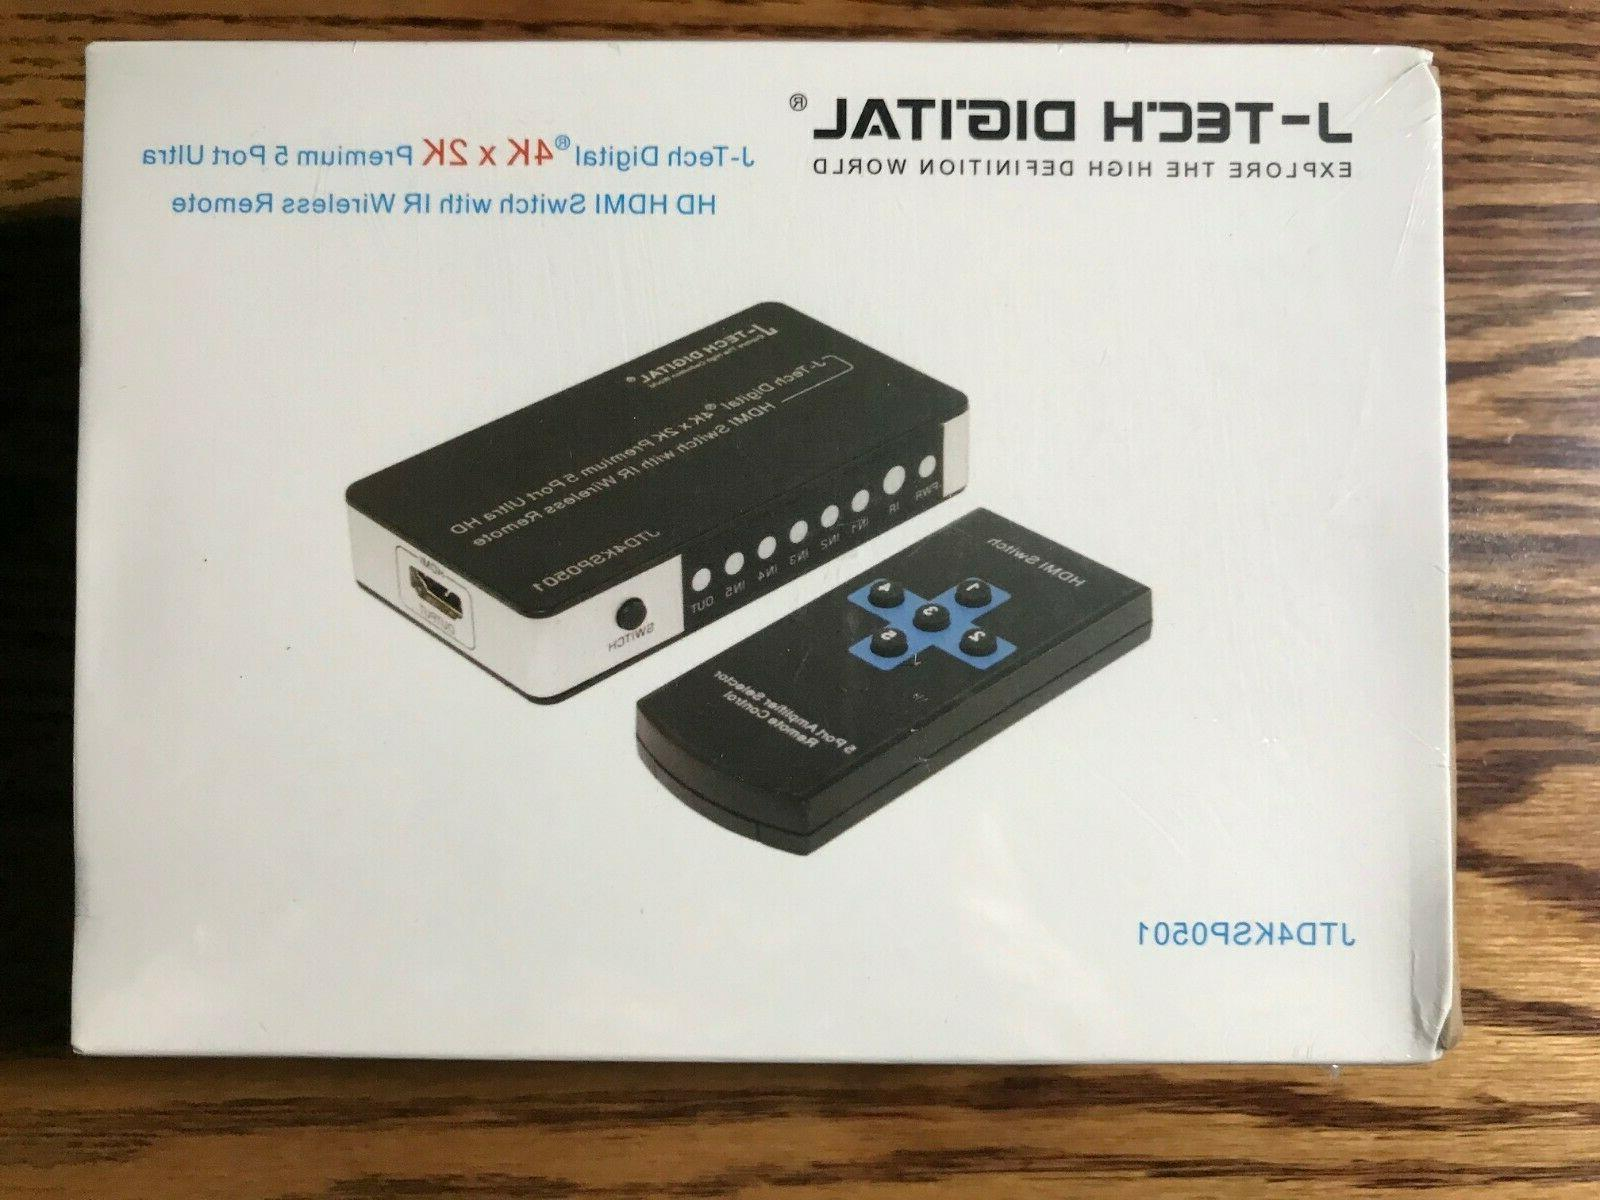 jtd3dsp0501 speed hdmi switch